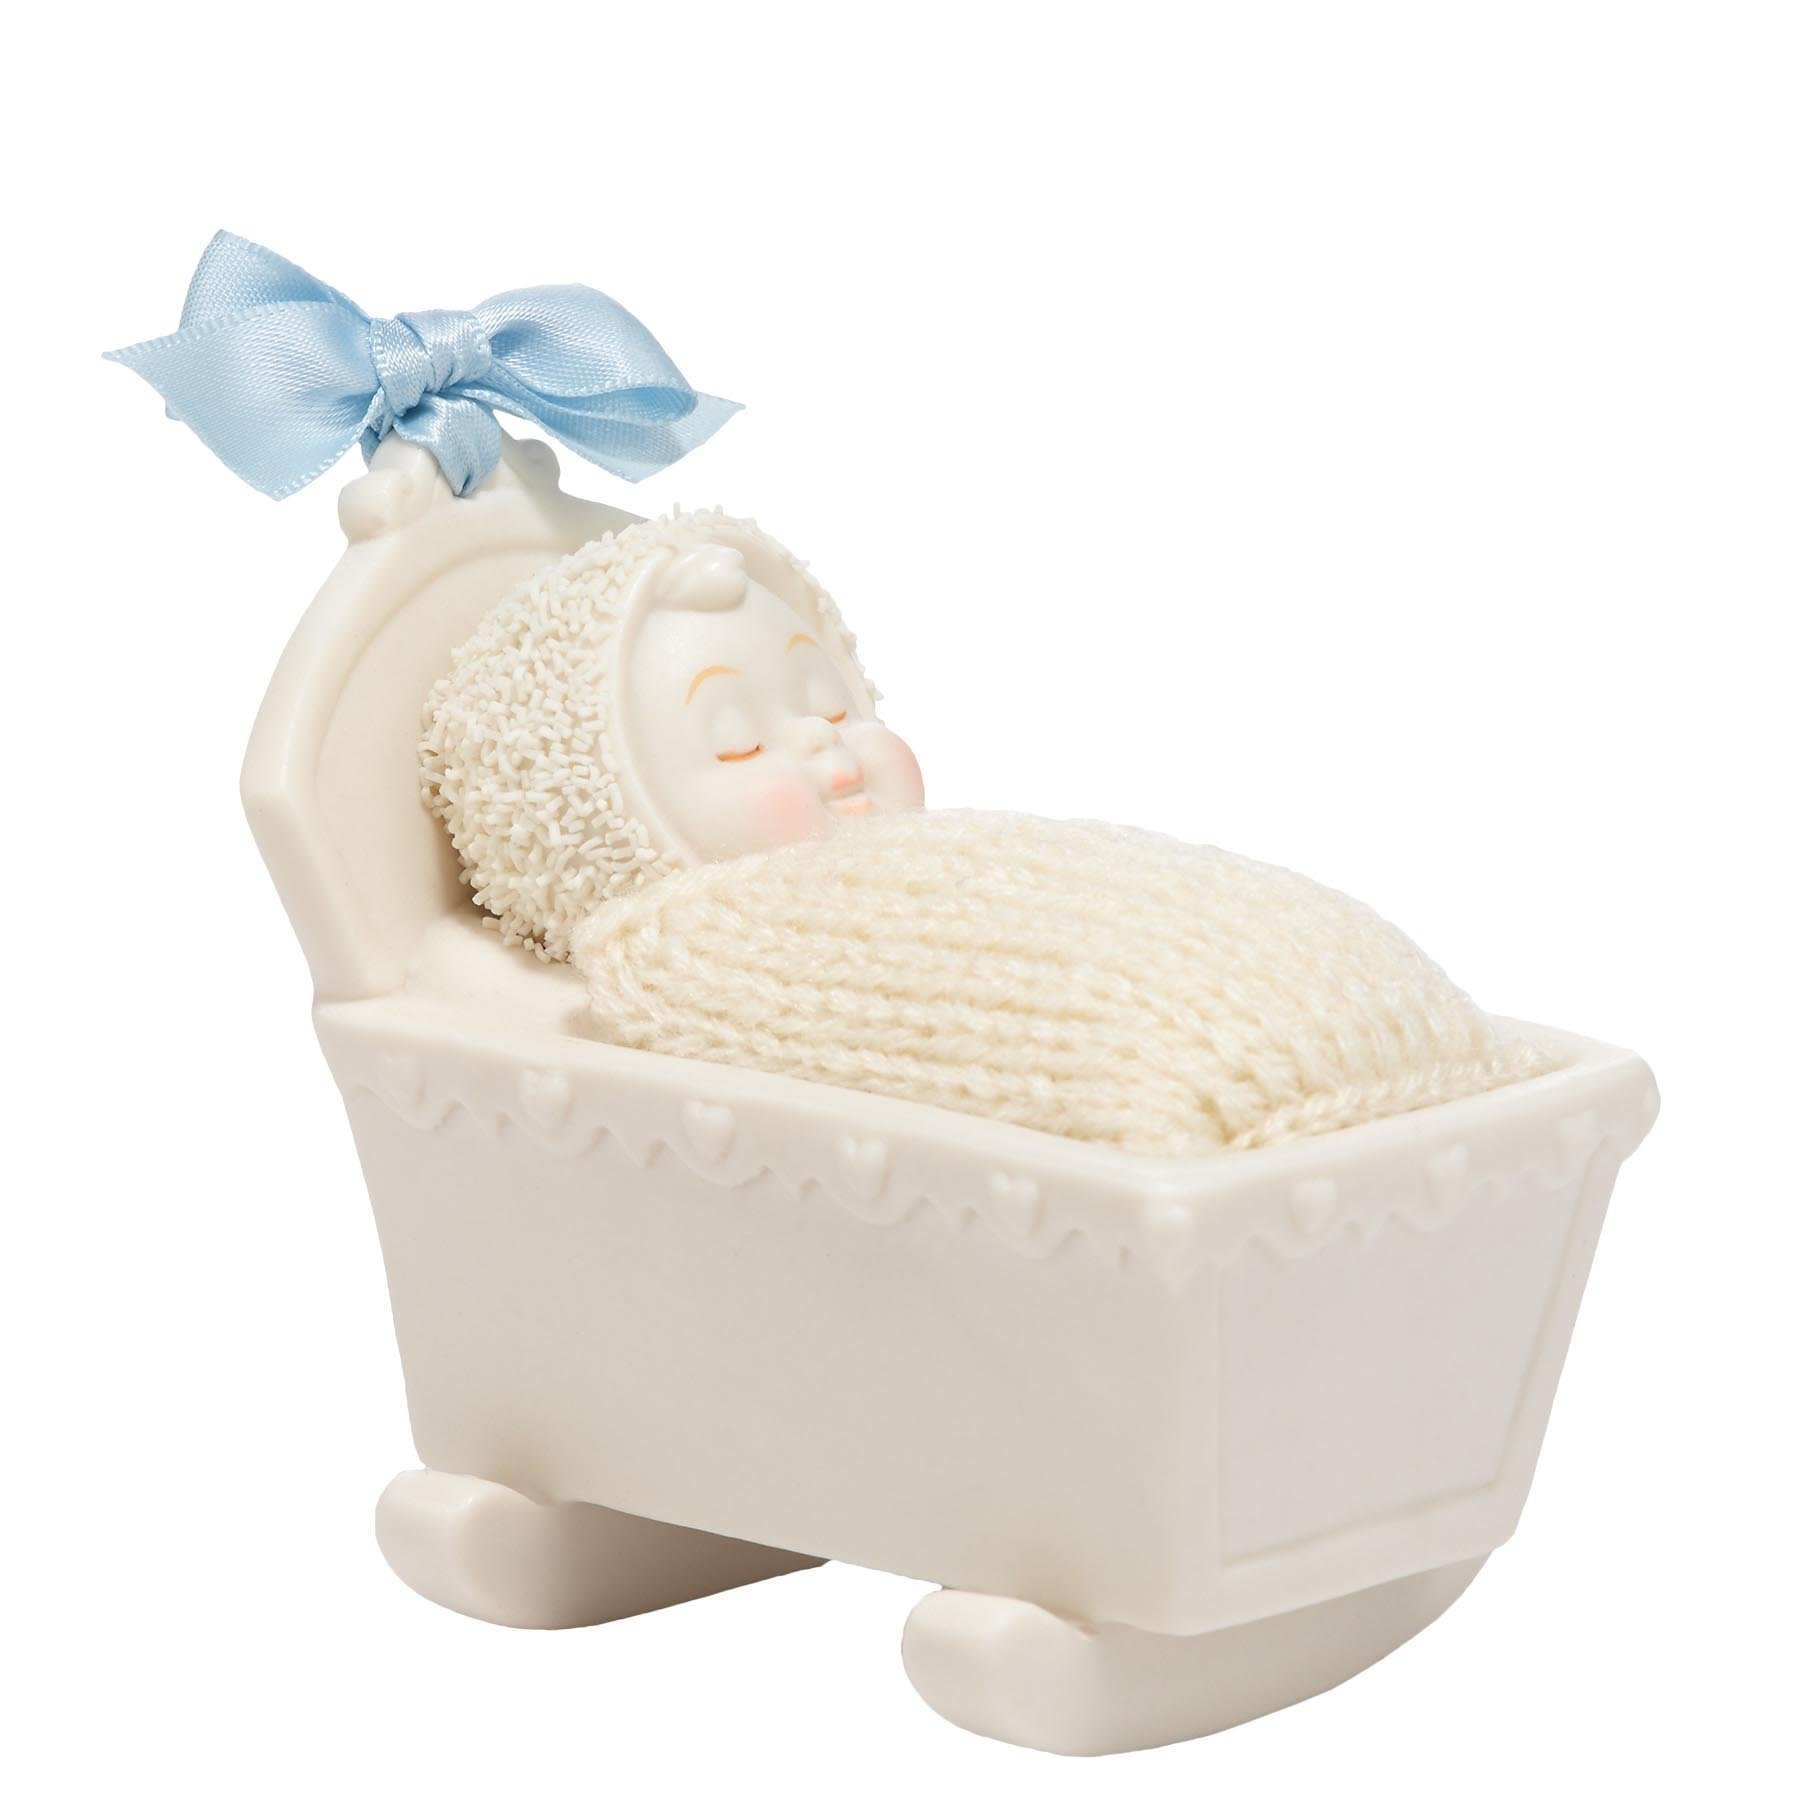 Department 56 Snowbabies Classics Rock-A-Bye Baby Boy Figurine, 3.25 inch